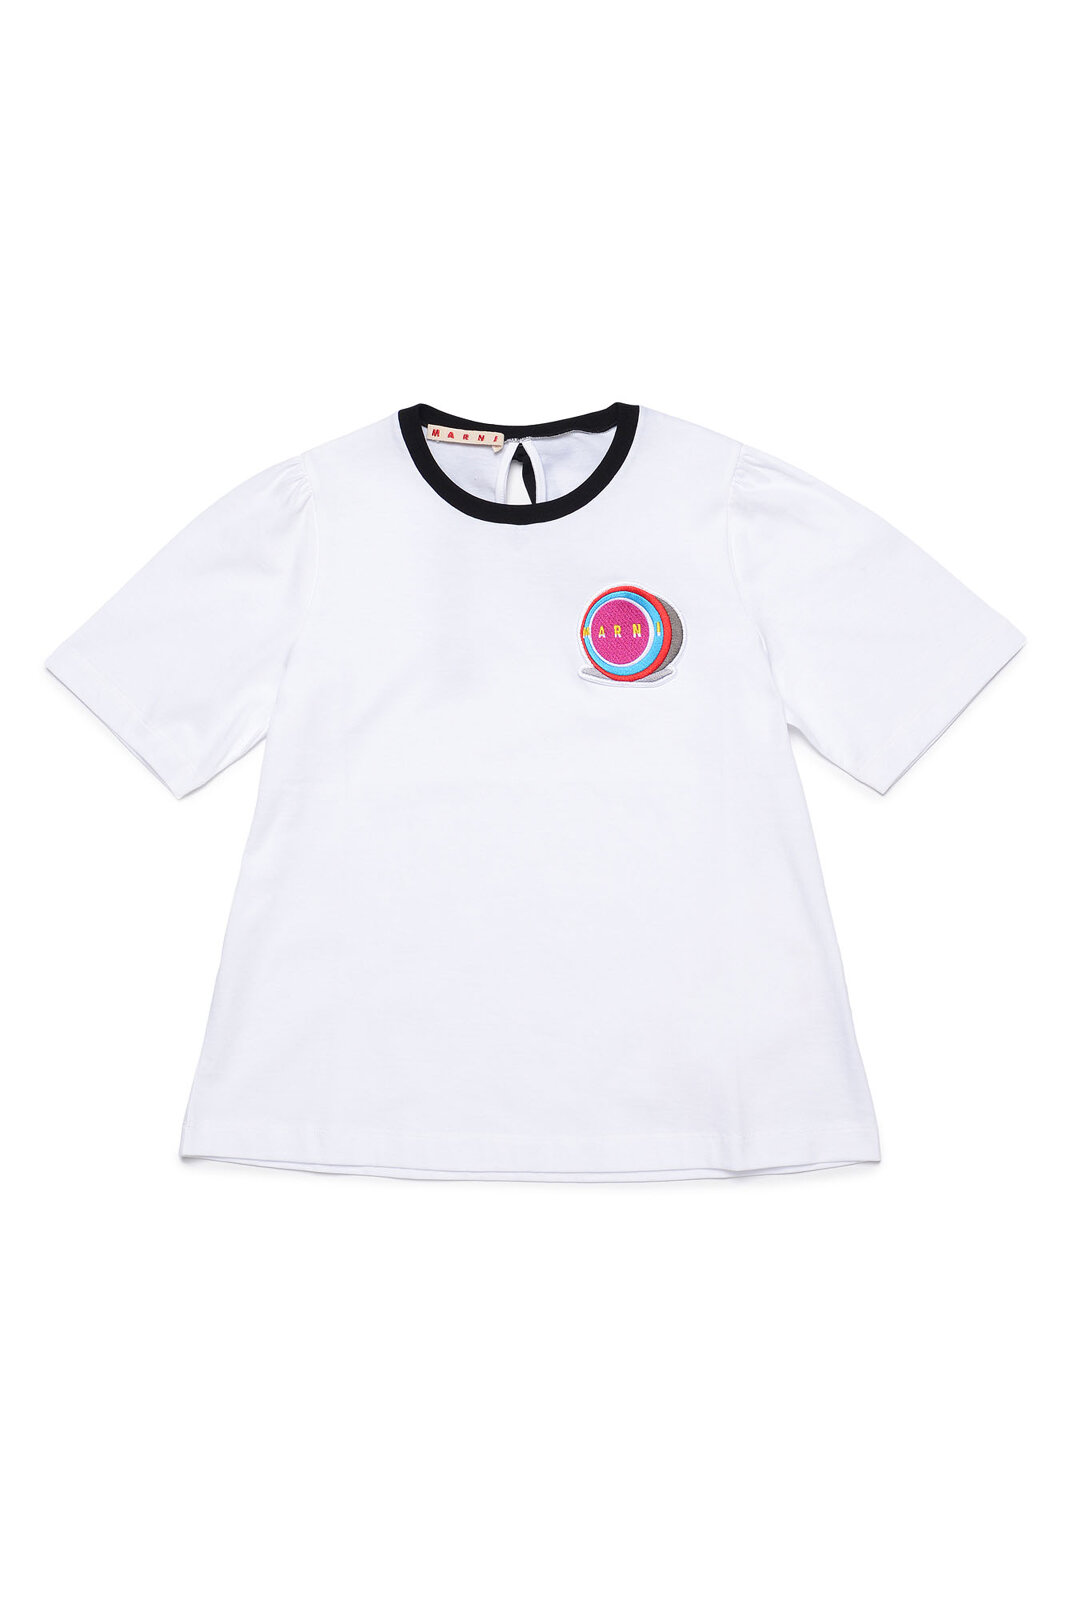 T-shirt - Marni Junior